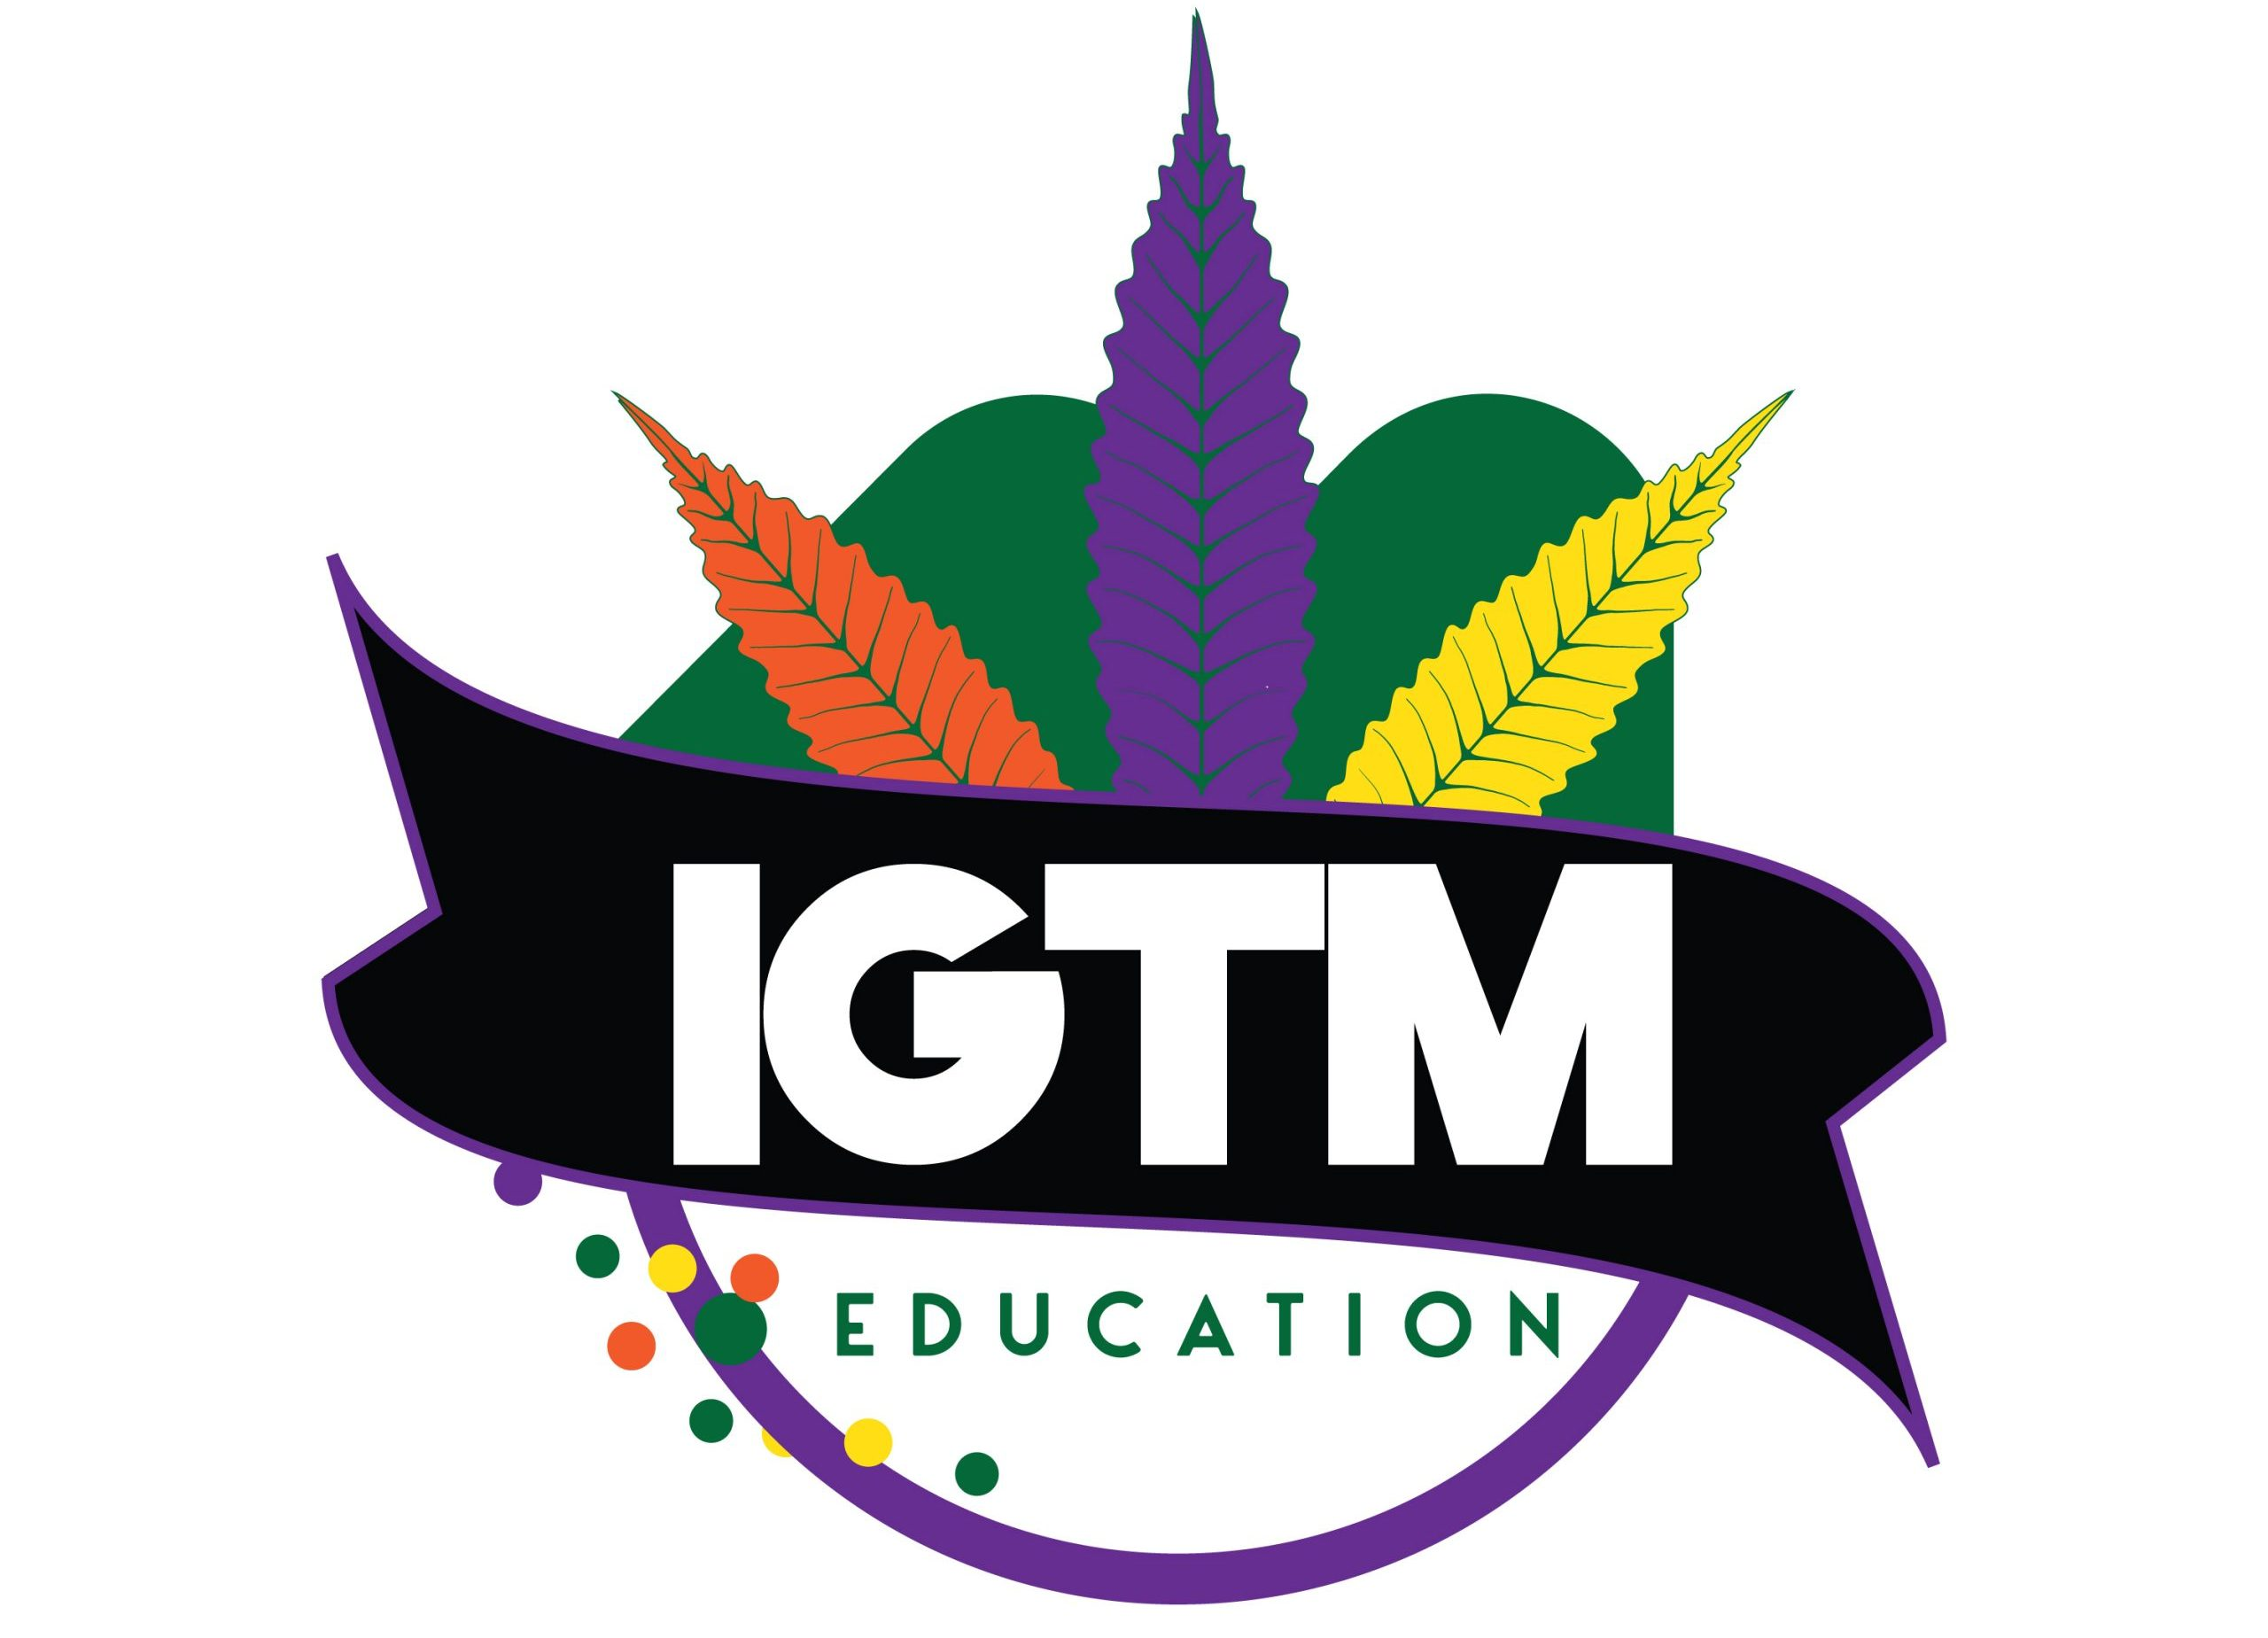 IGTM Education